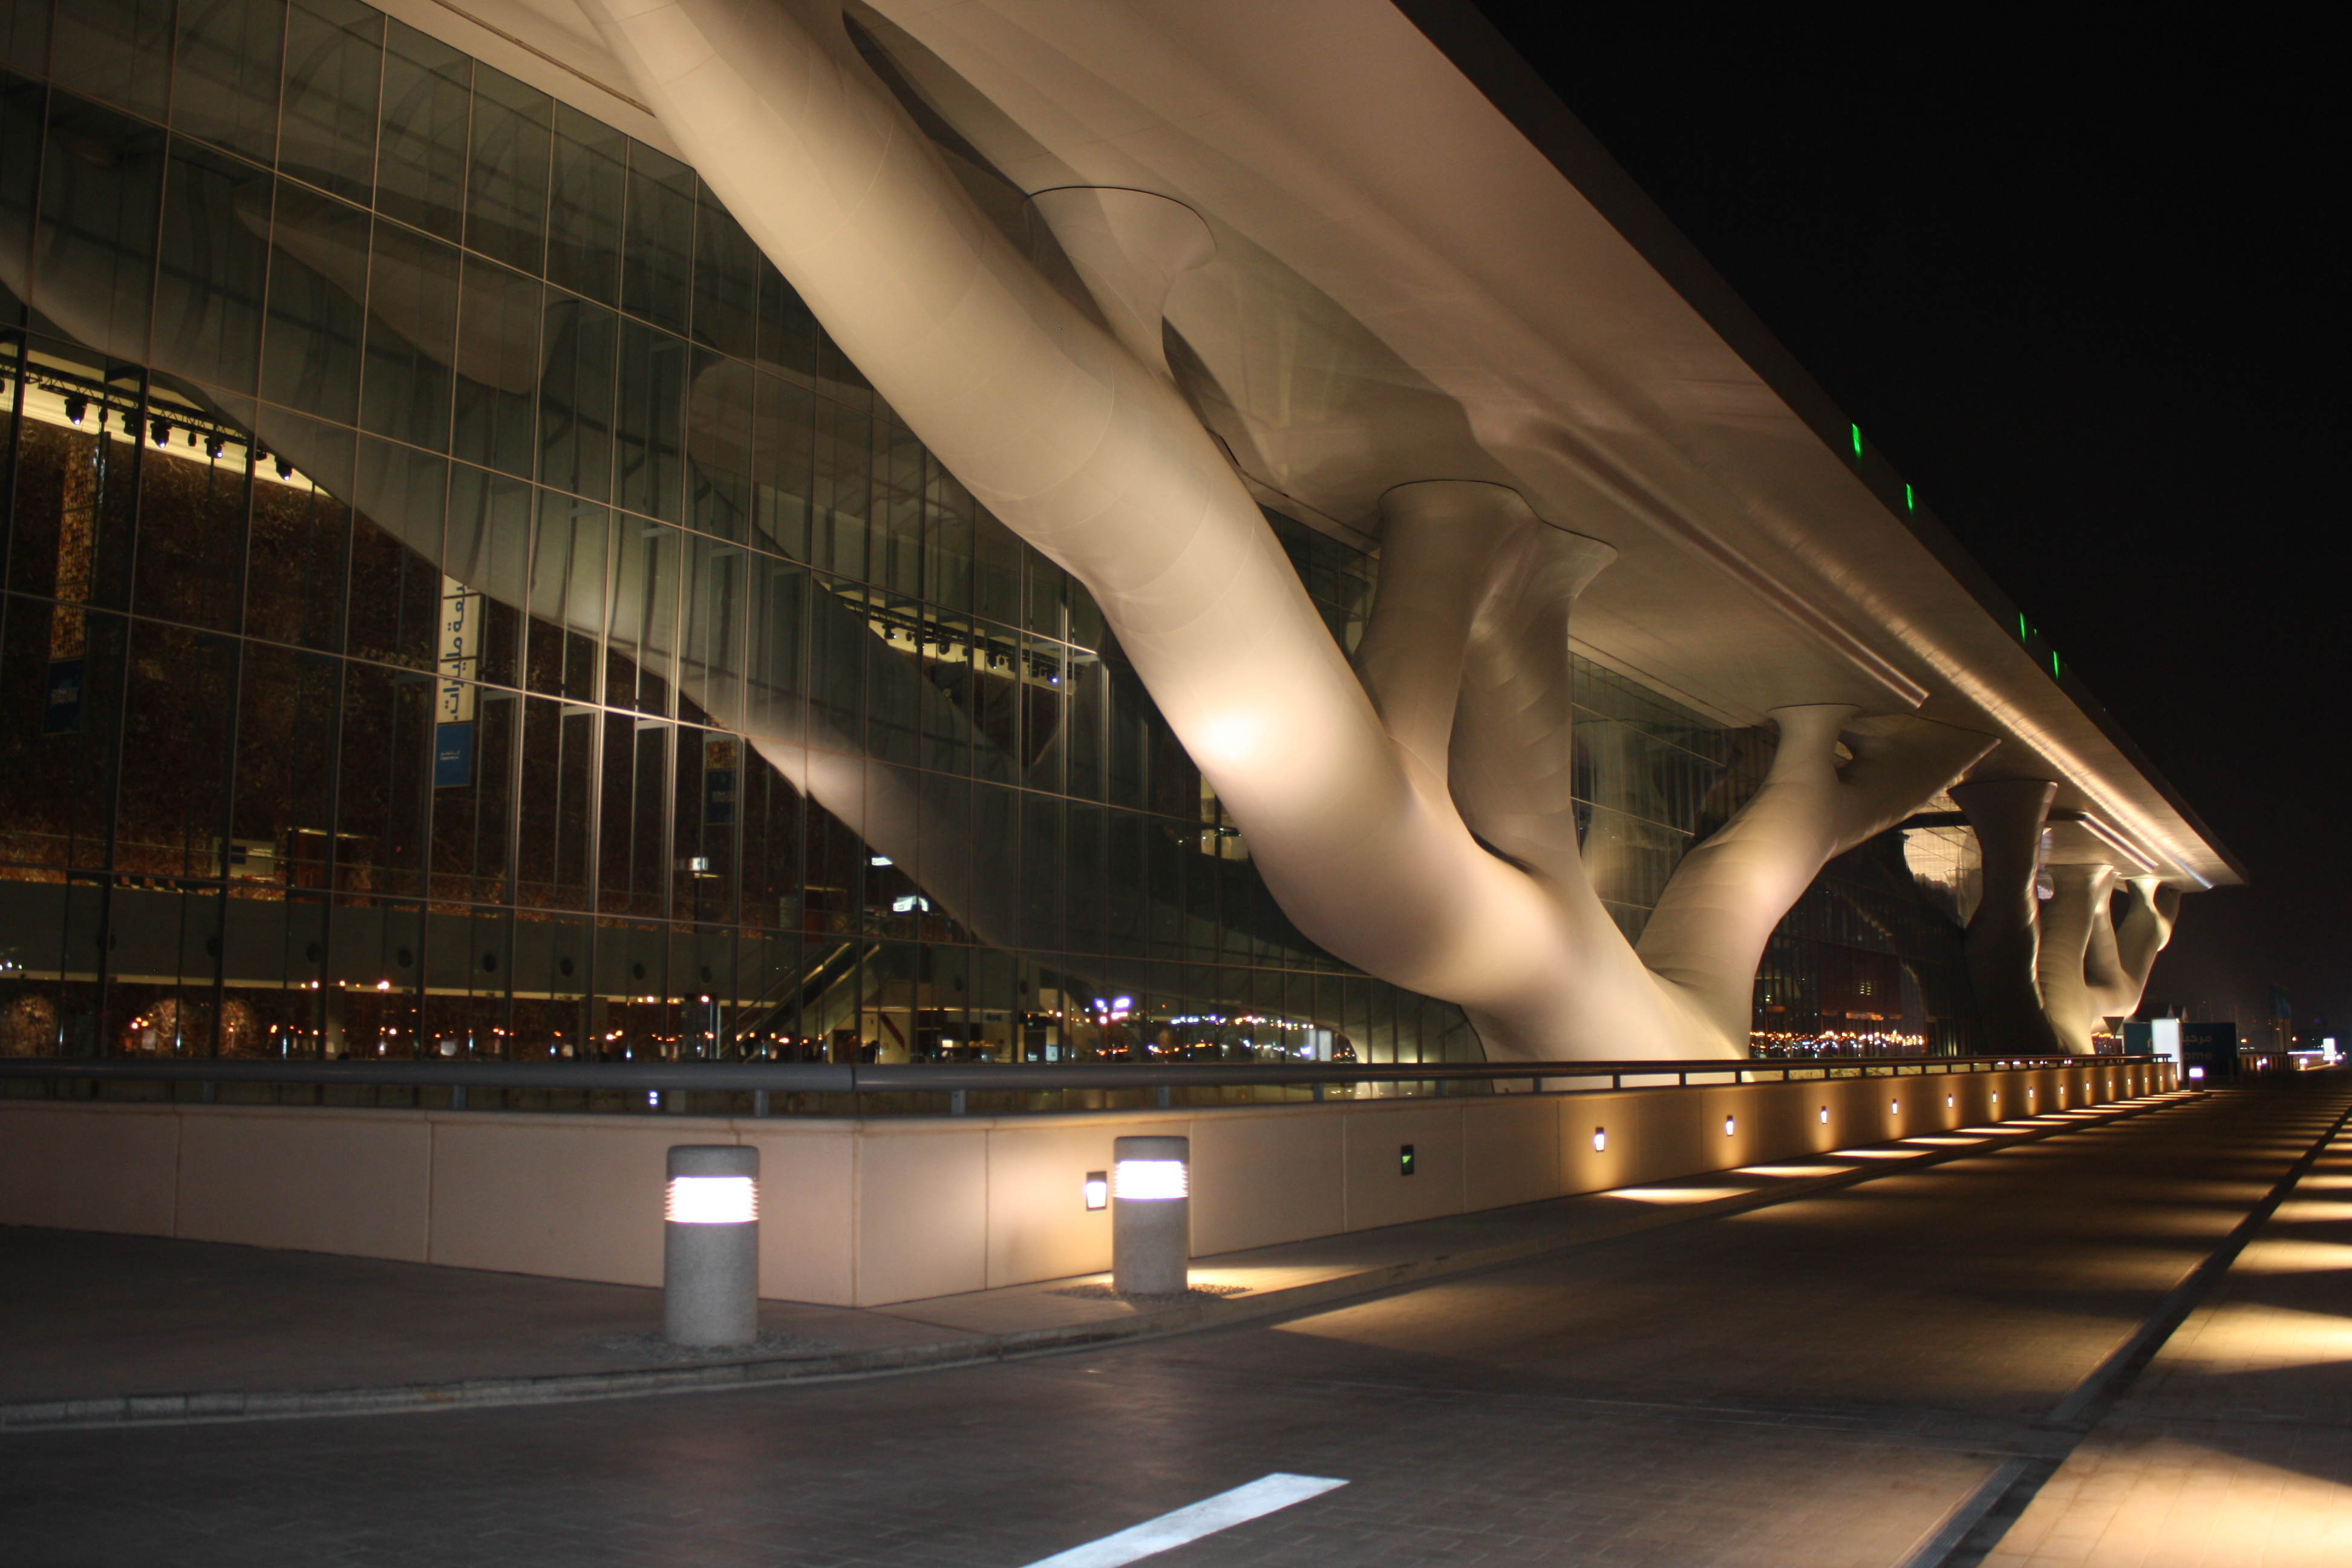 The Qatar National Convention Centre in Doha shrouded in silence as climate change negotiators talk through the night